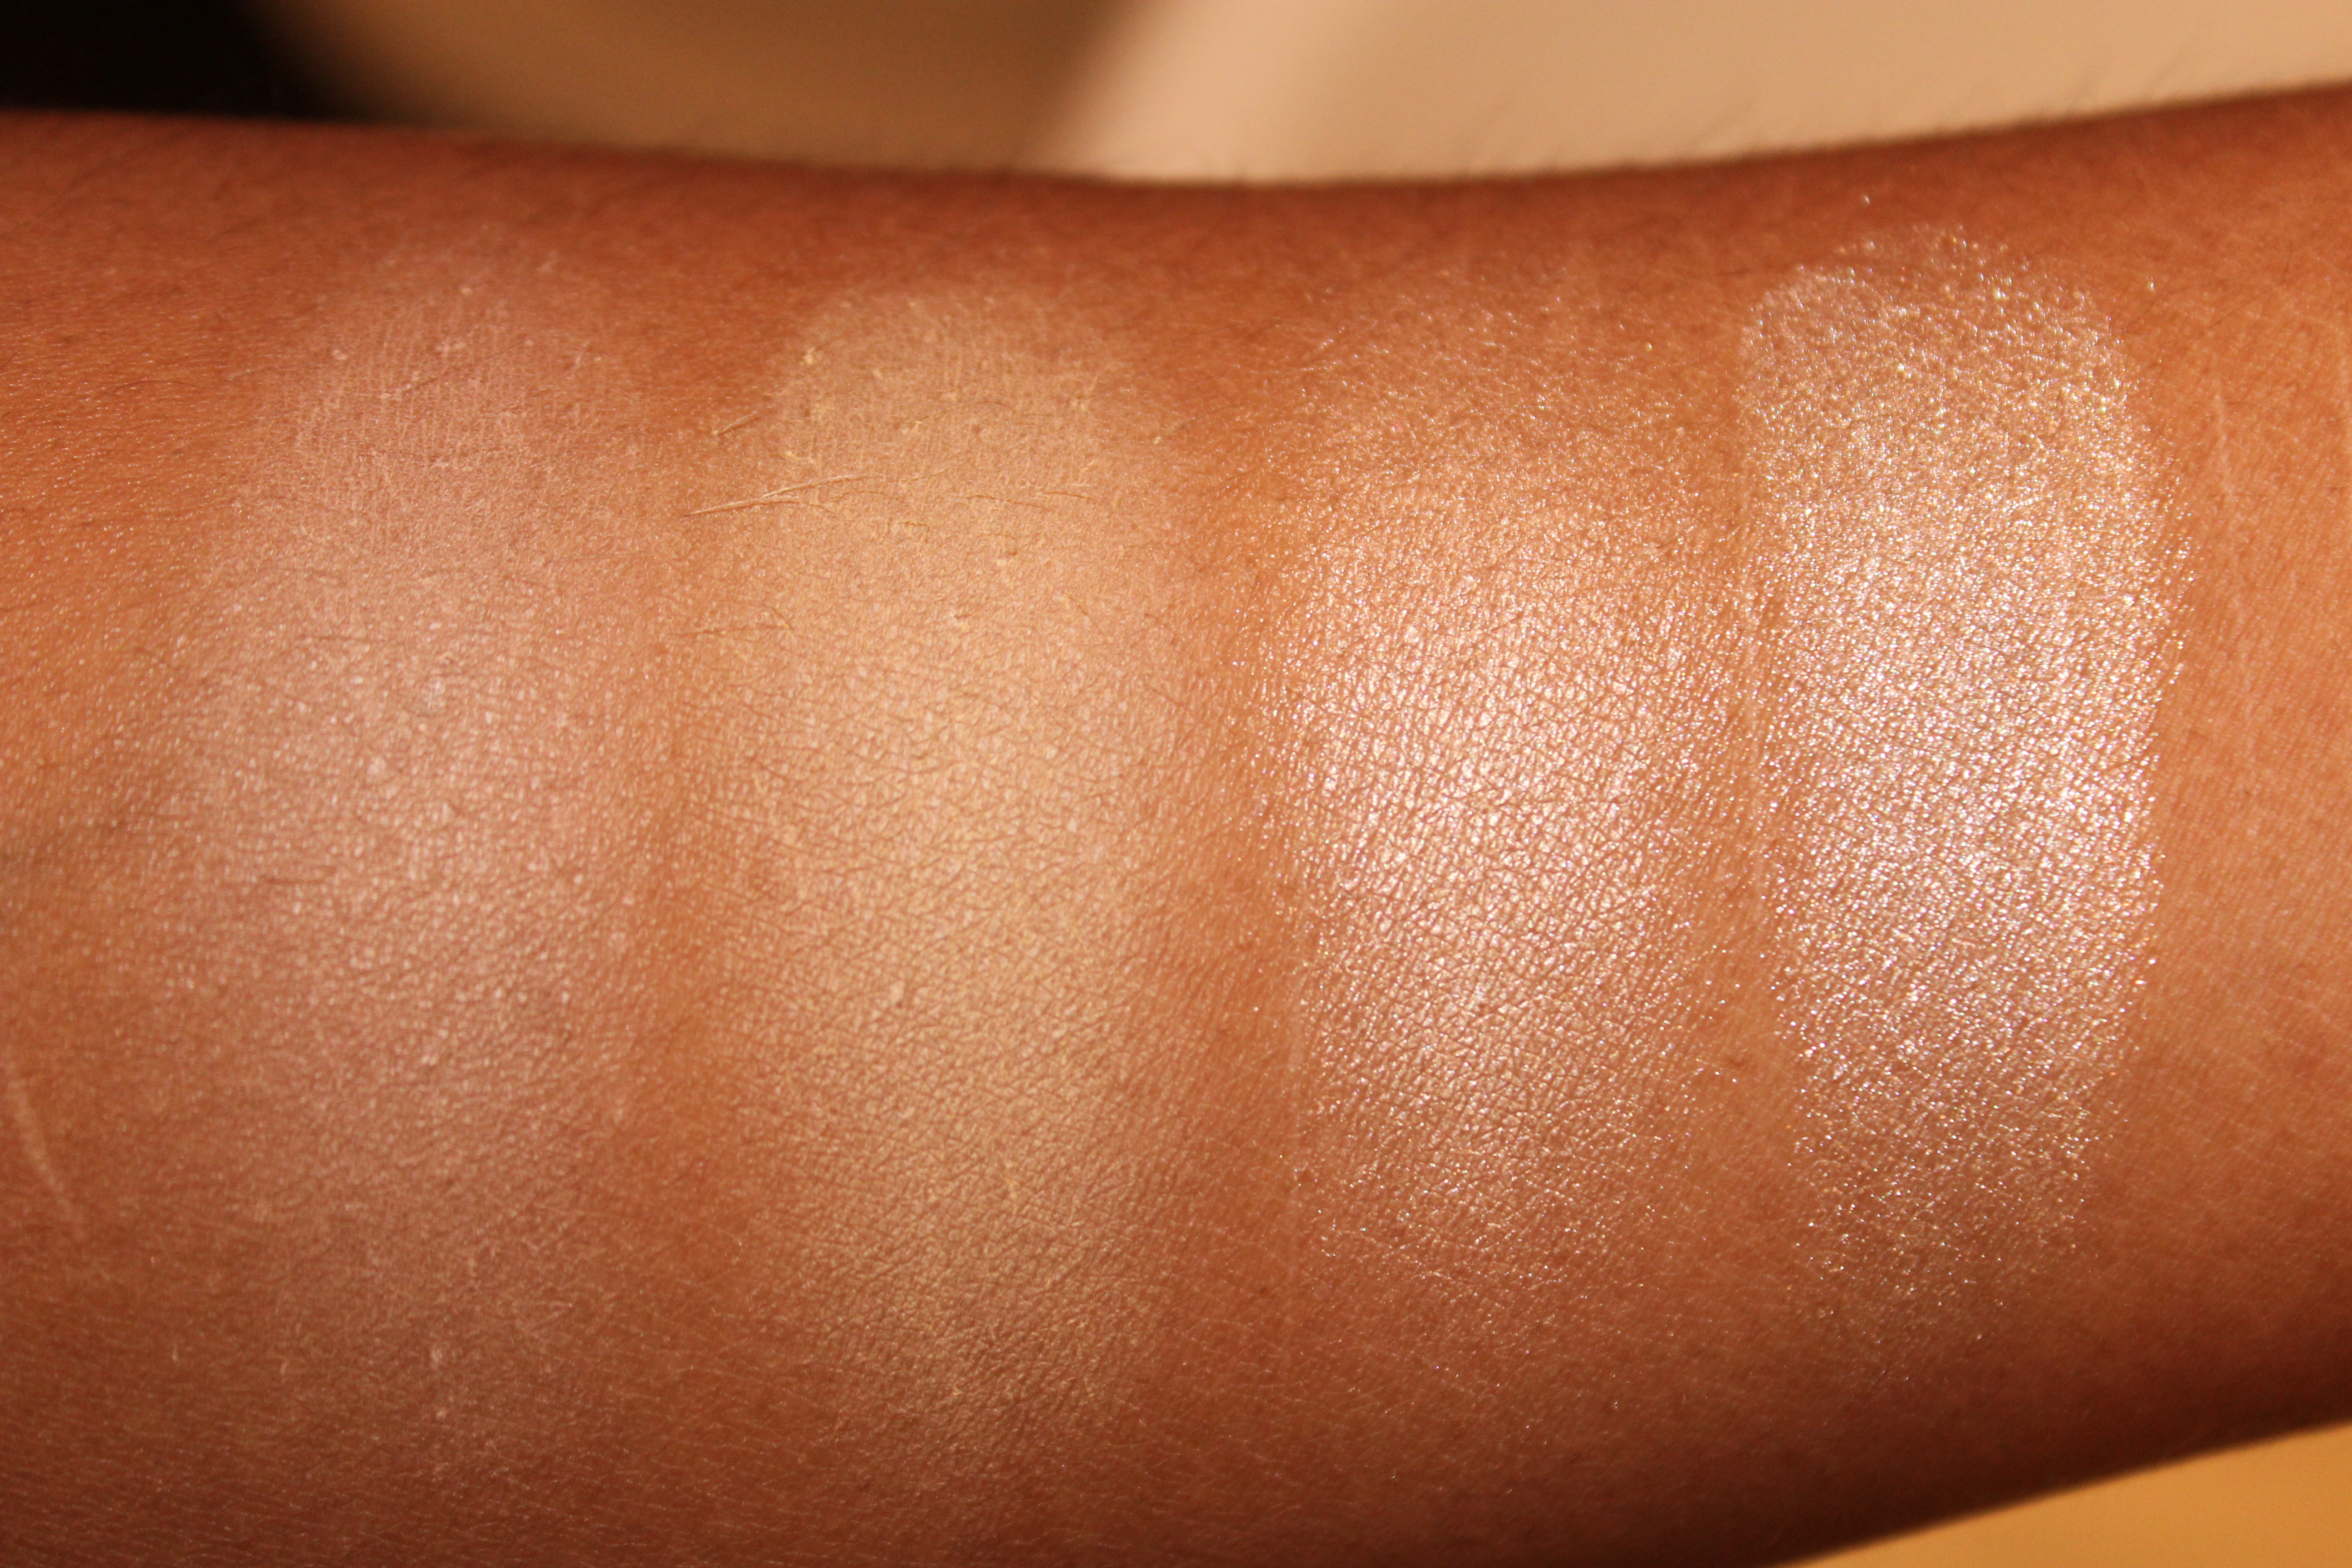 So These Are The Swatches, And As You Can See, Even Though I Have Quite A Dark  Skin Tone, The Pigmentation Is Stunning! The Bronzers Don't Really Show Up  On